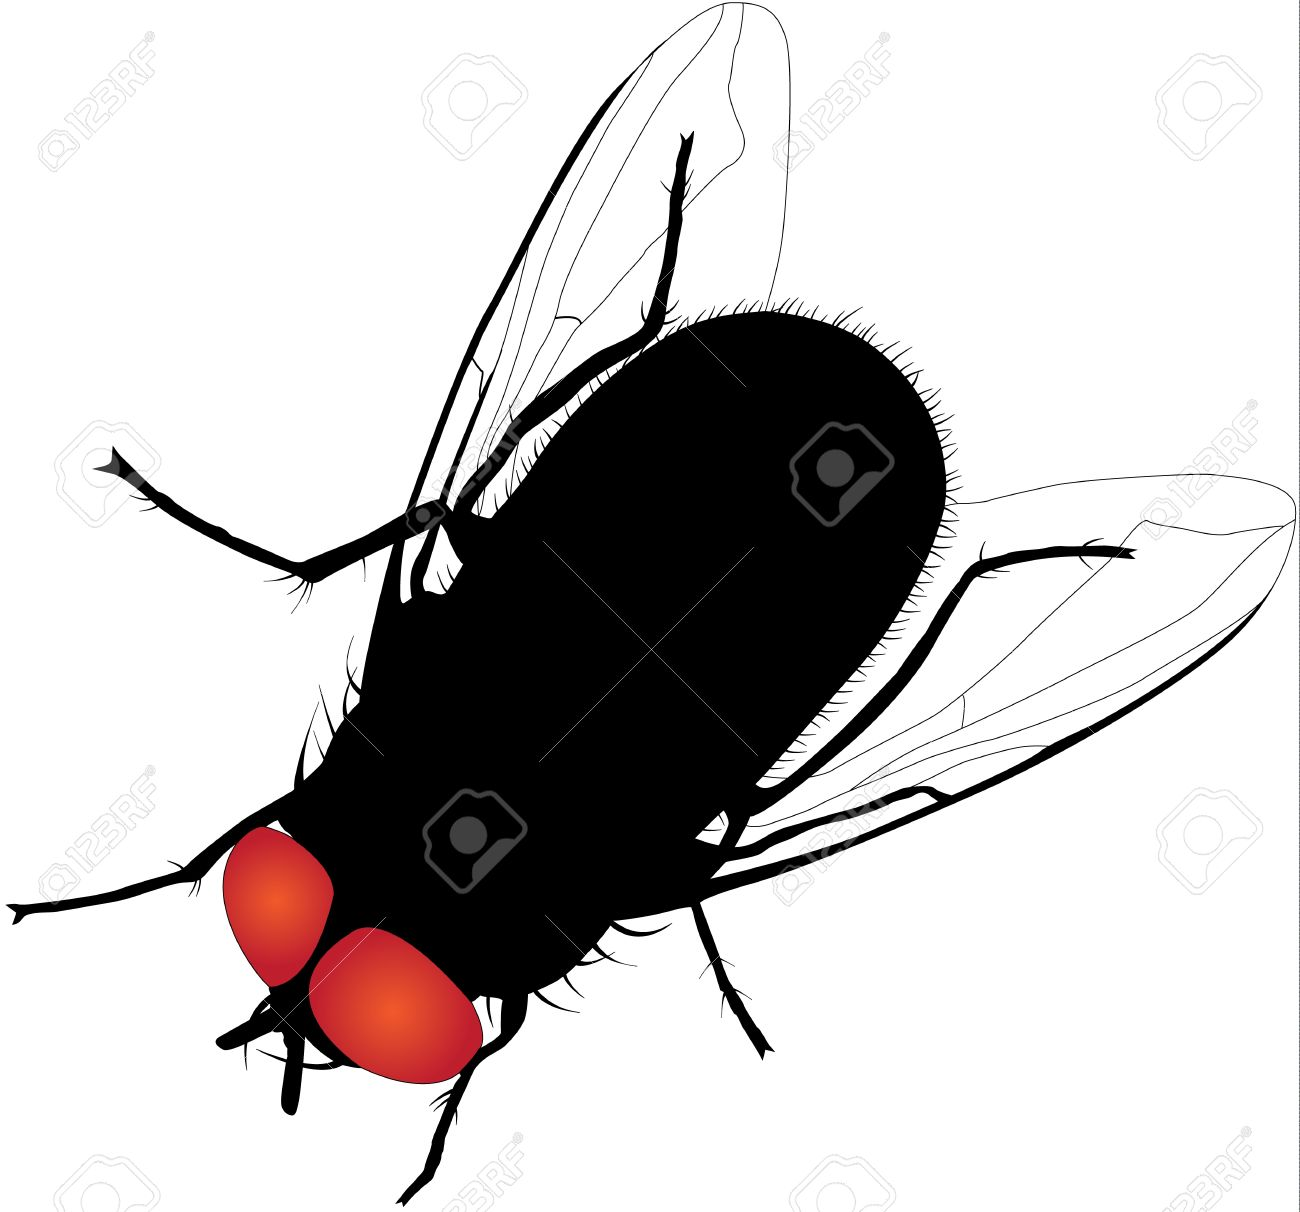 547 Housefly Cliparts, Stock Vector And Royalty Free Housefly.